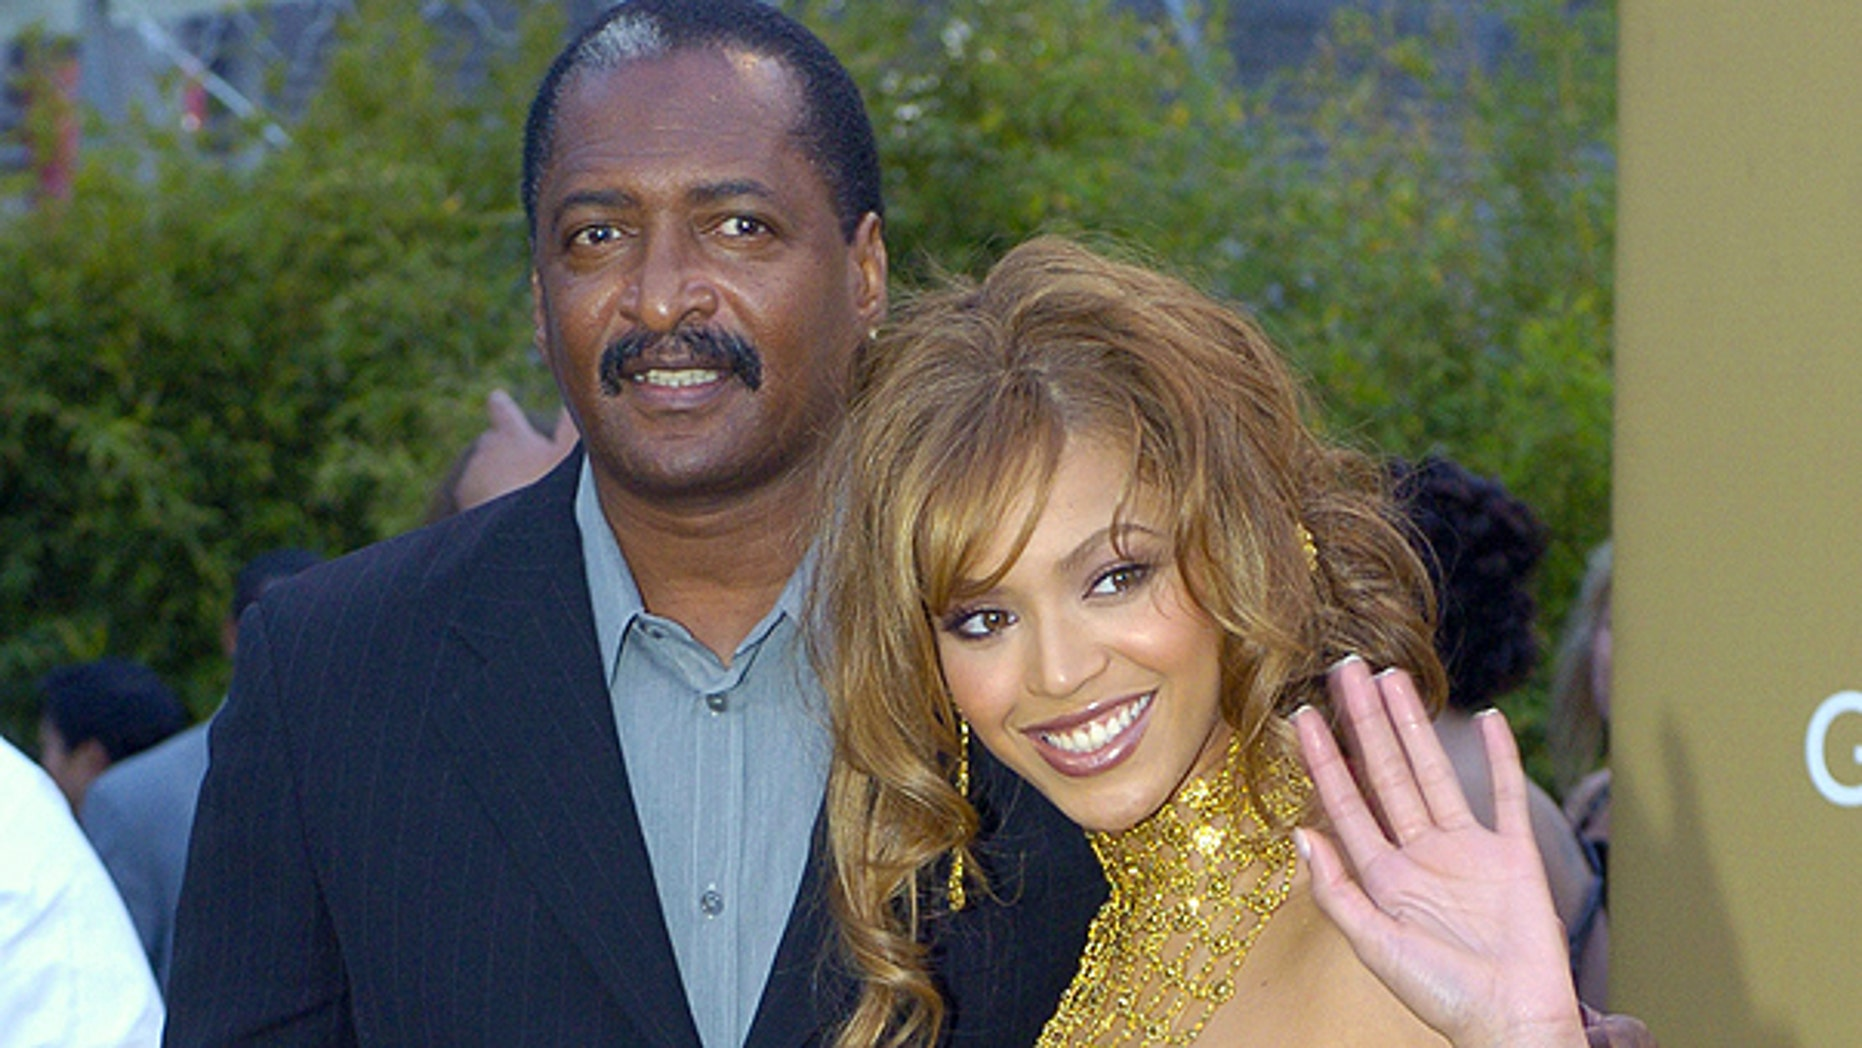 In this Feb. 8, 2004 file photo, singer Beyonce Knowles arrives at the 46th Annual Grammy Awards with her father and manager Mathew Knowles in Los Angeles.